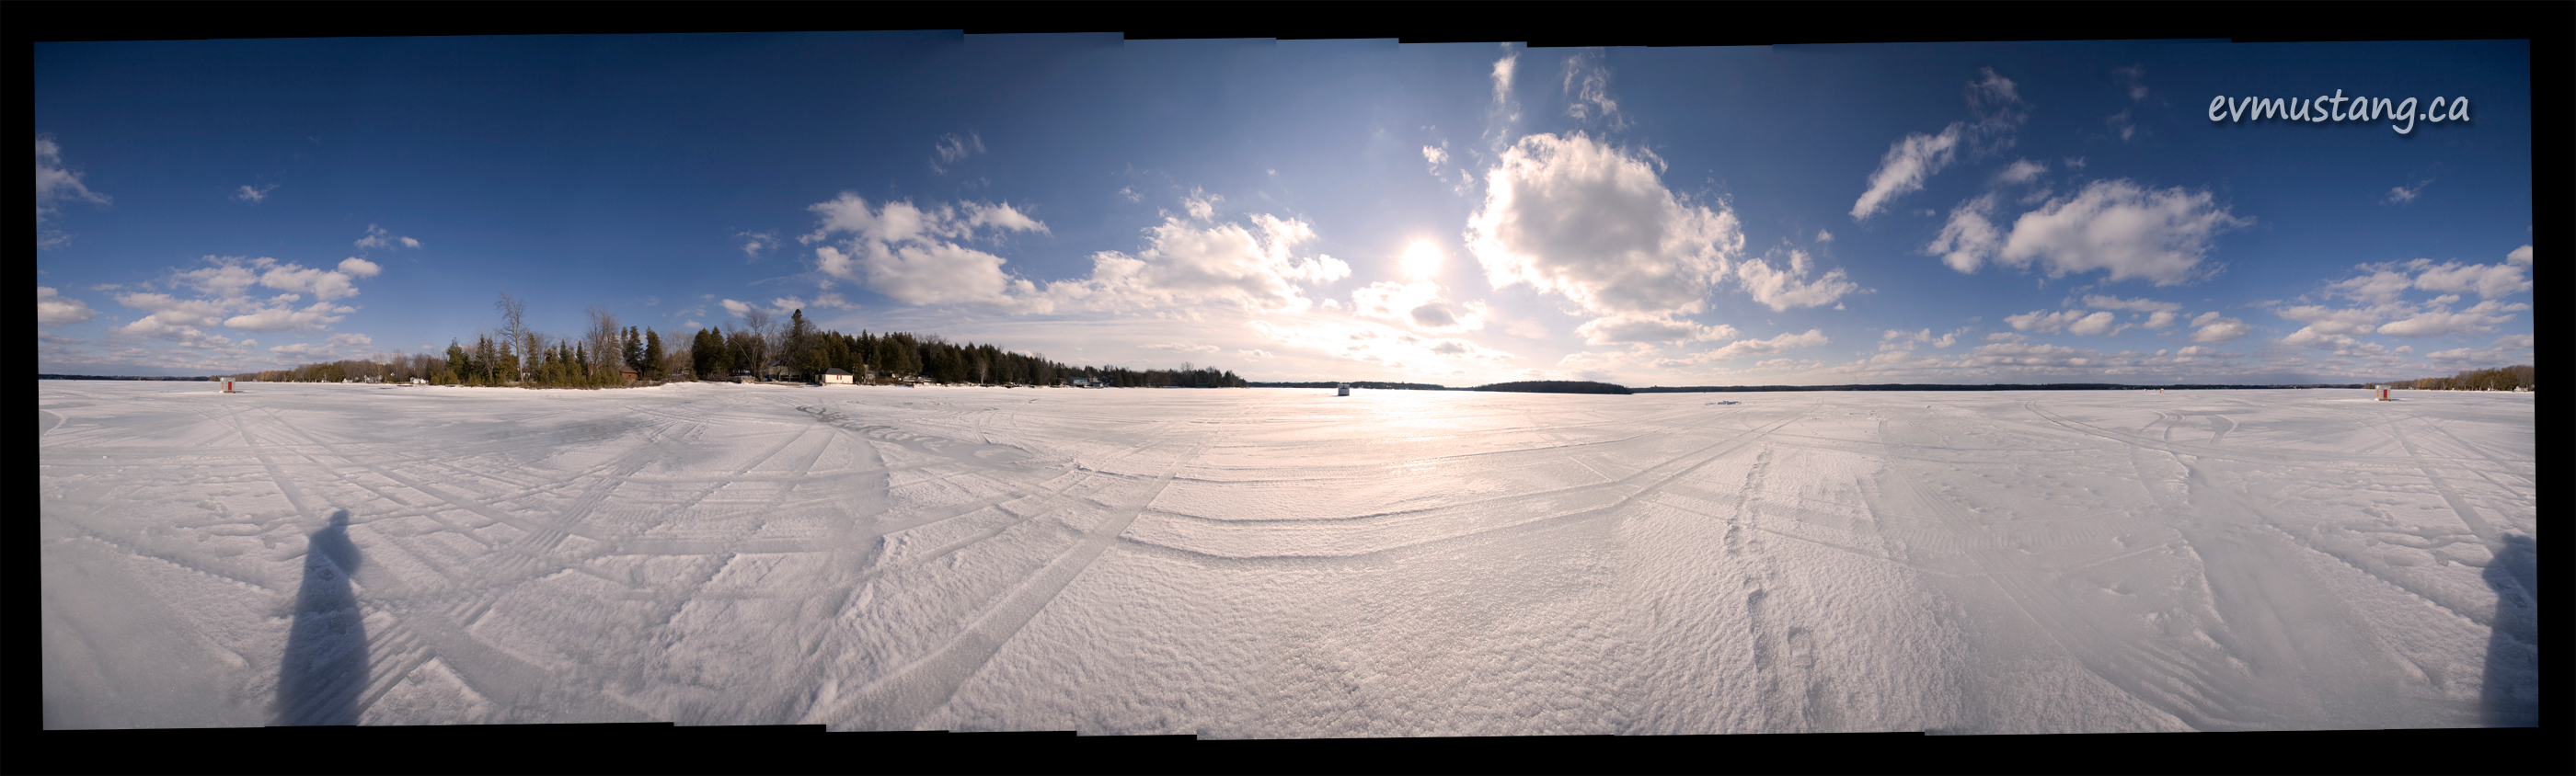 panroamic image of Curve Lake in February